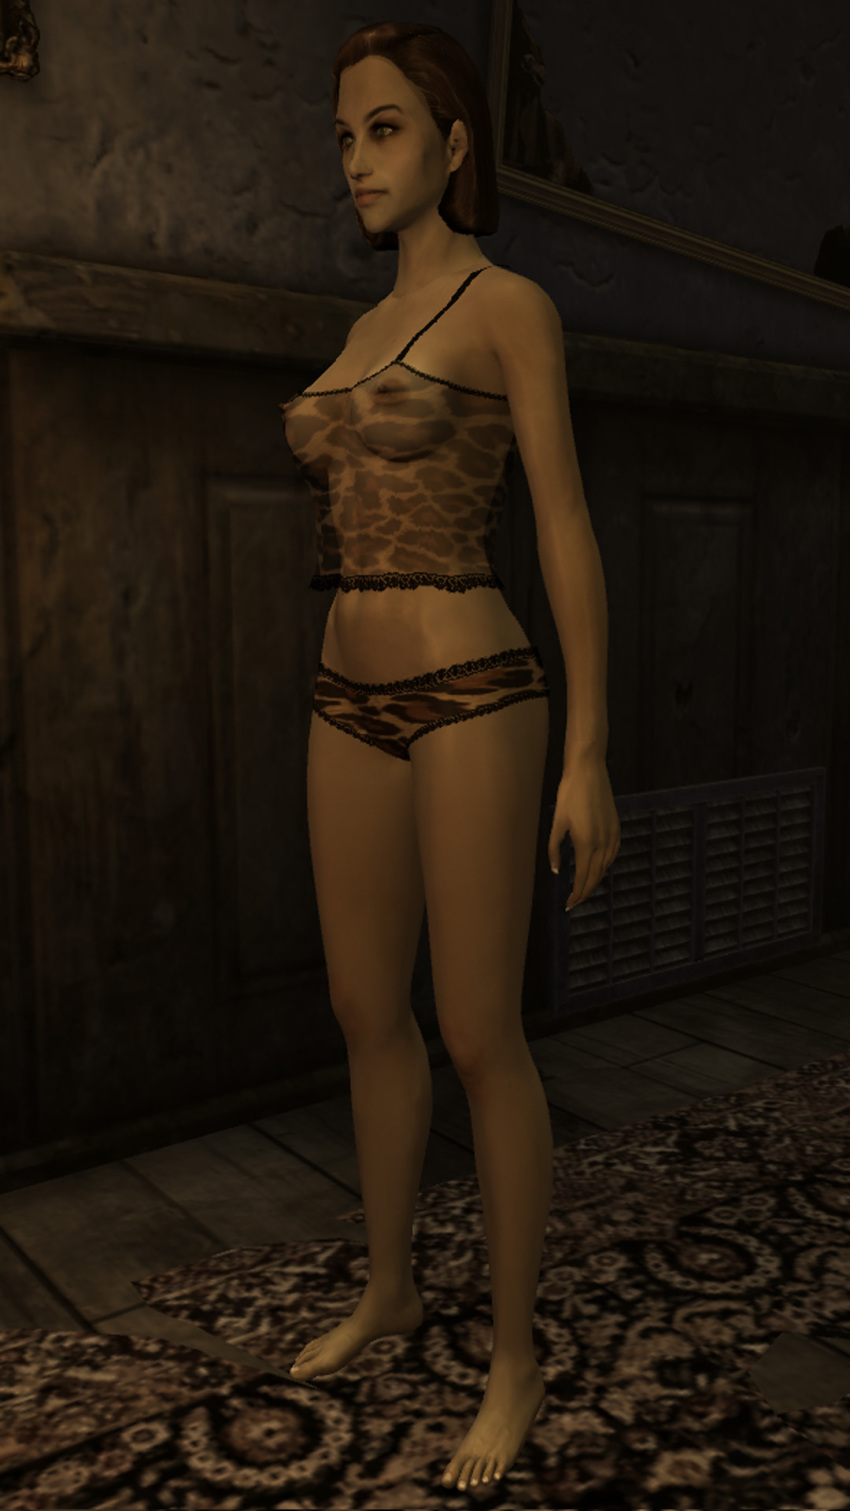 naughty fallout nightwear new vegas Where is shane stardew valley